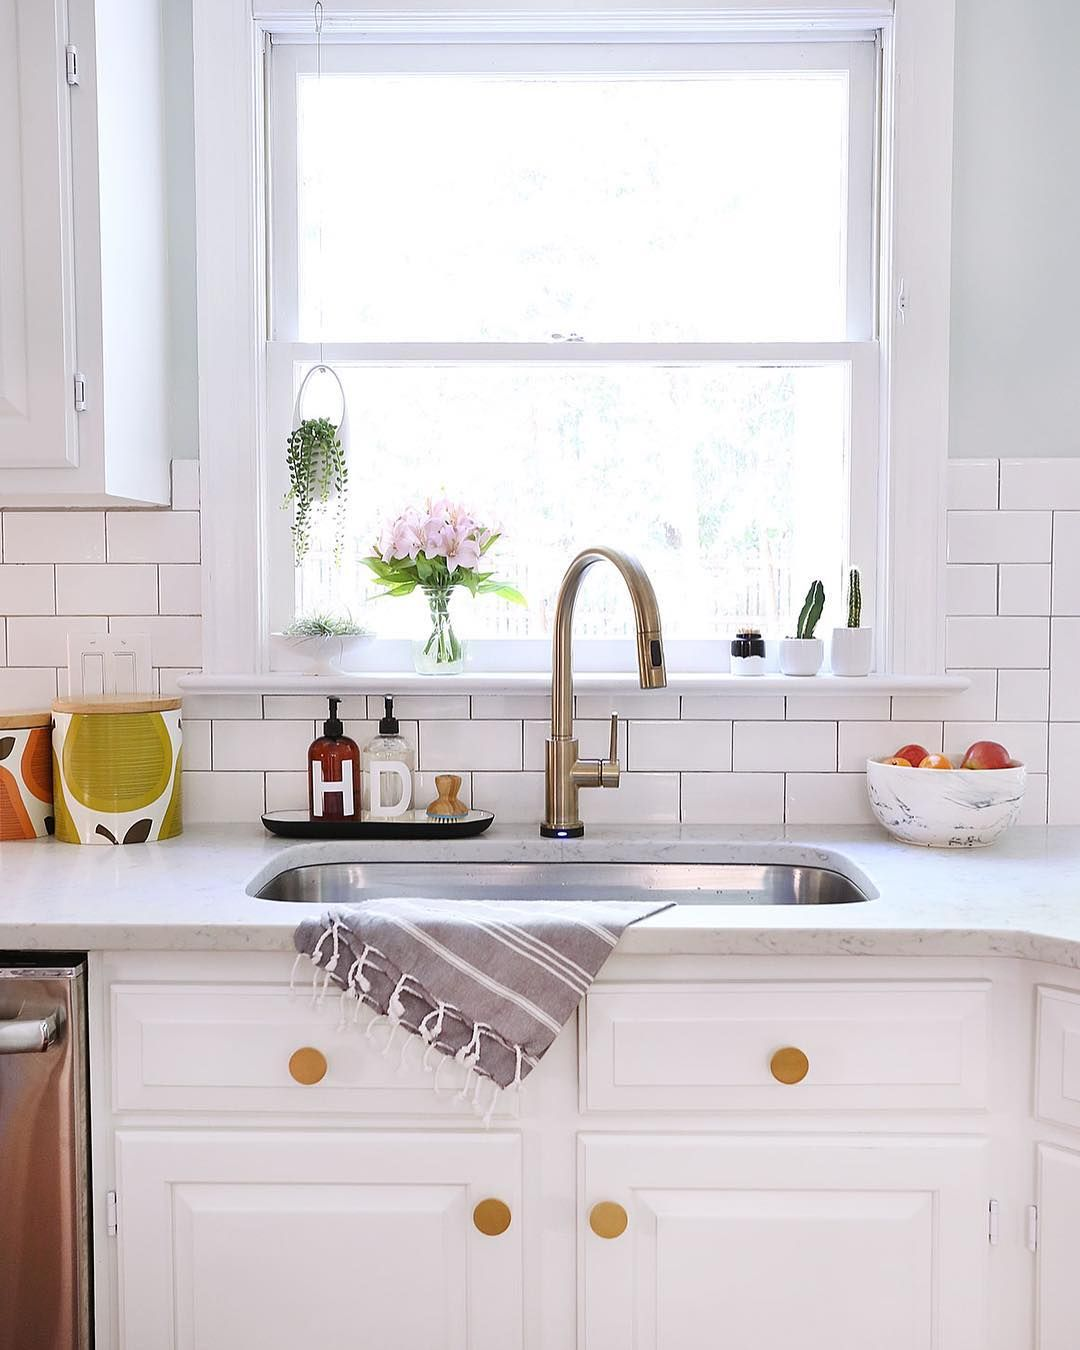 Pin by Daisy Spring on Kitchens *** | Kitchen cabinets ...